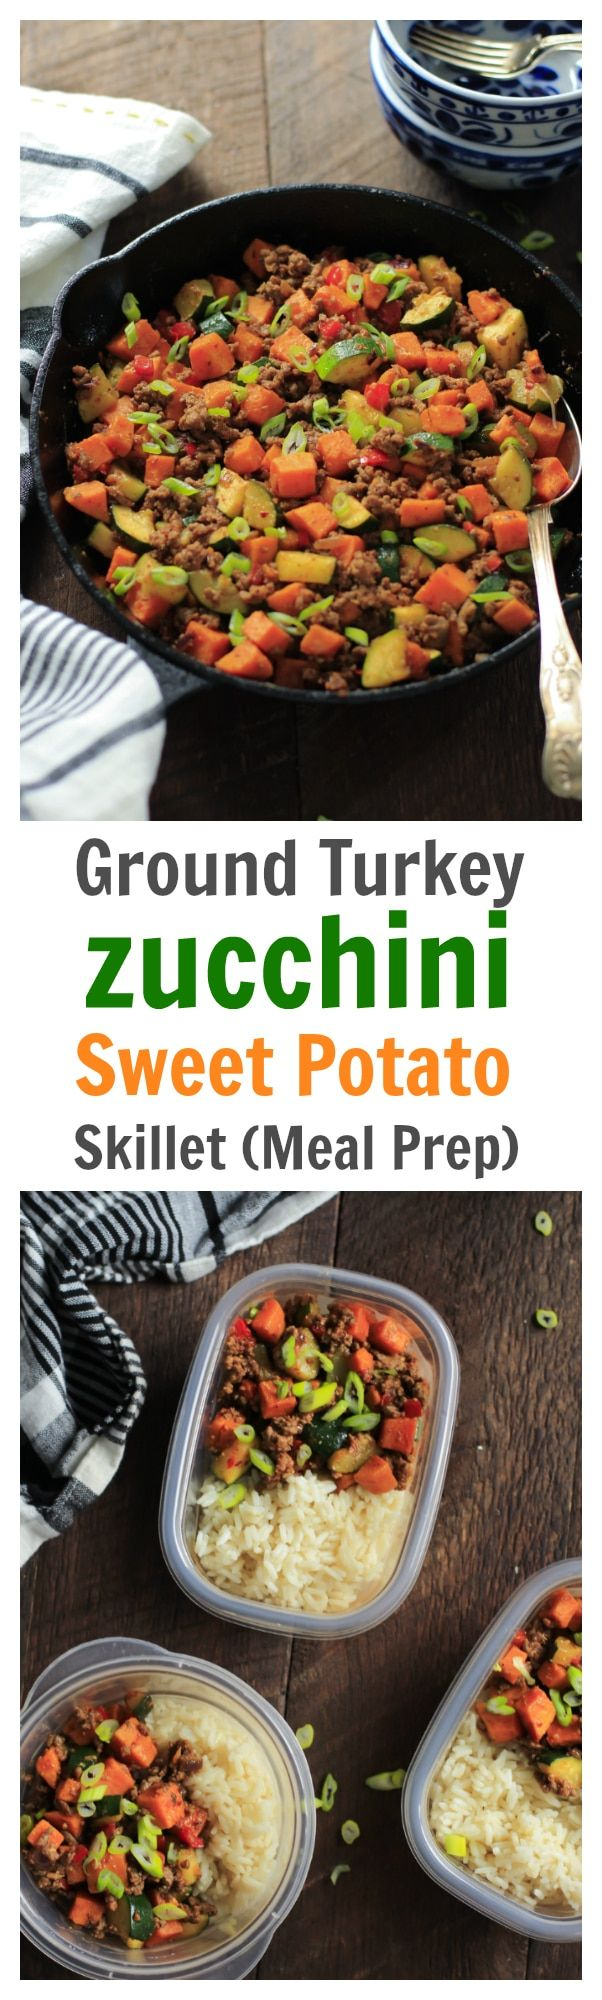 Ground Turkey Zucchini Sweet Potato Skillet - This Ground Beef Zucchini Sweet Potato Skillet is low-carb, gluten-free and paleo-friendly meal that will be ready in less than 30 mins. You will need only one-pan to make this delicious recipe, making clean up a breeze!